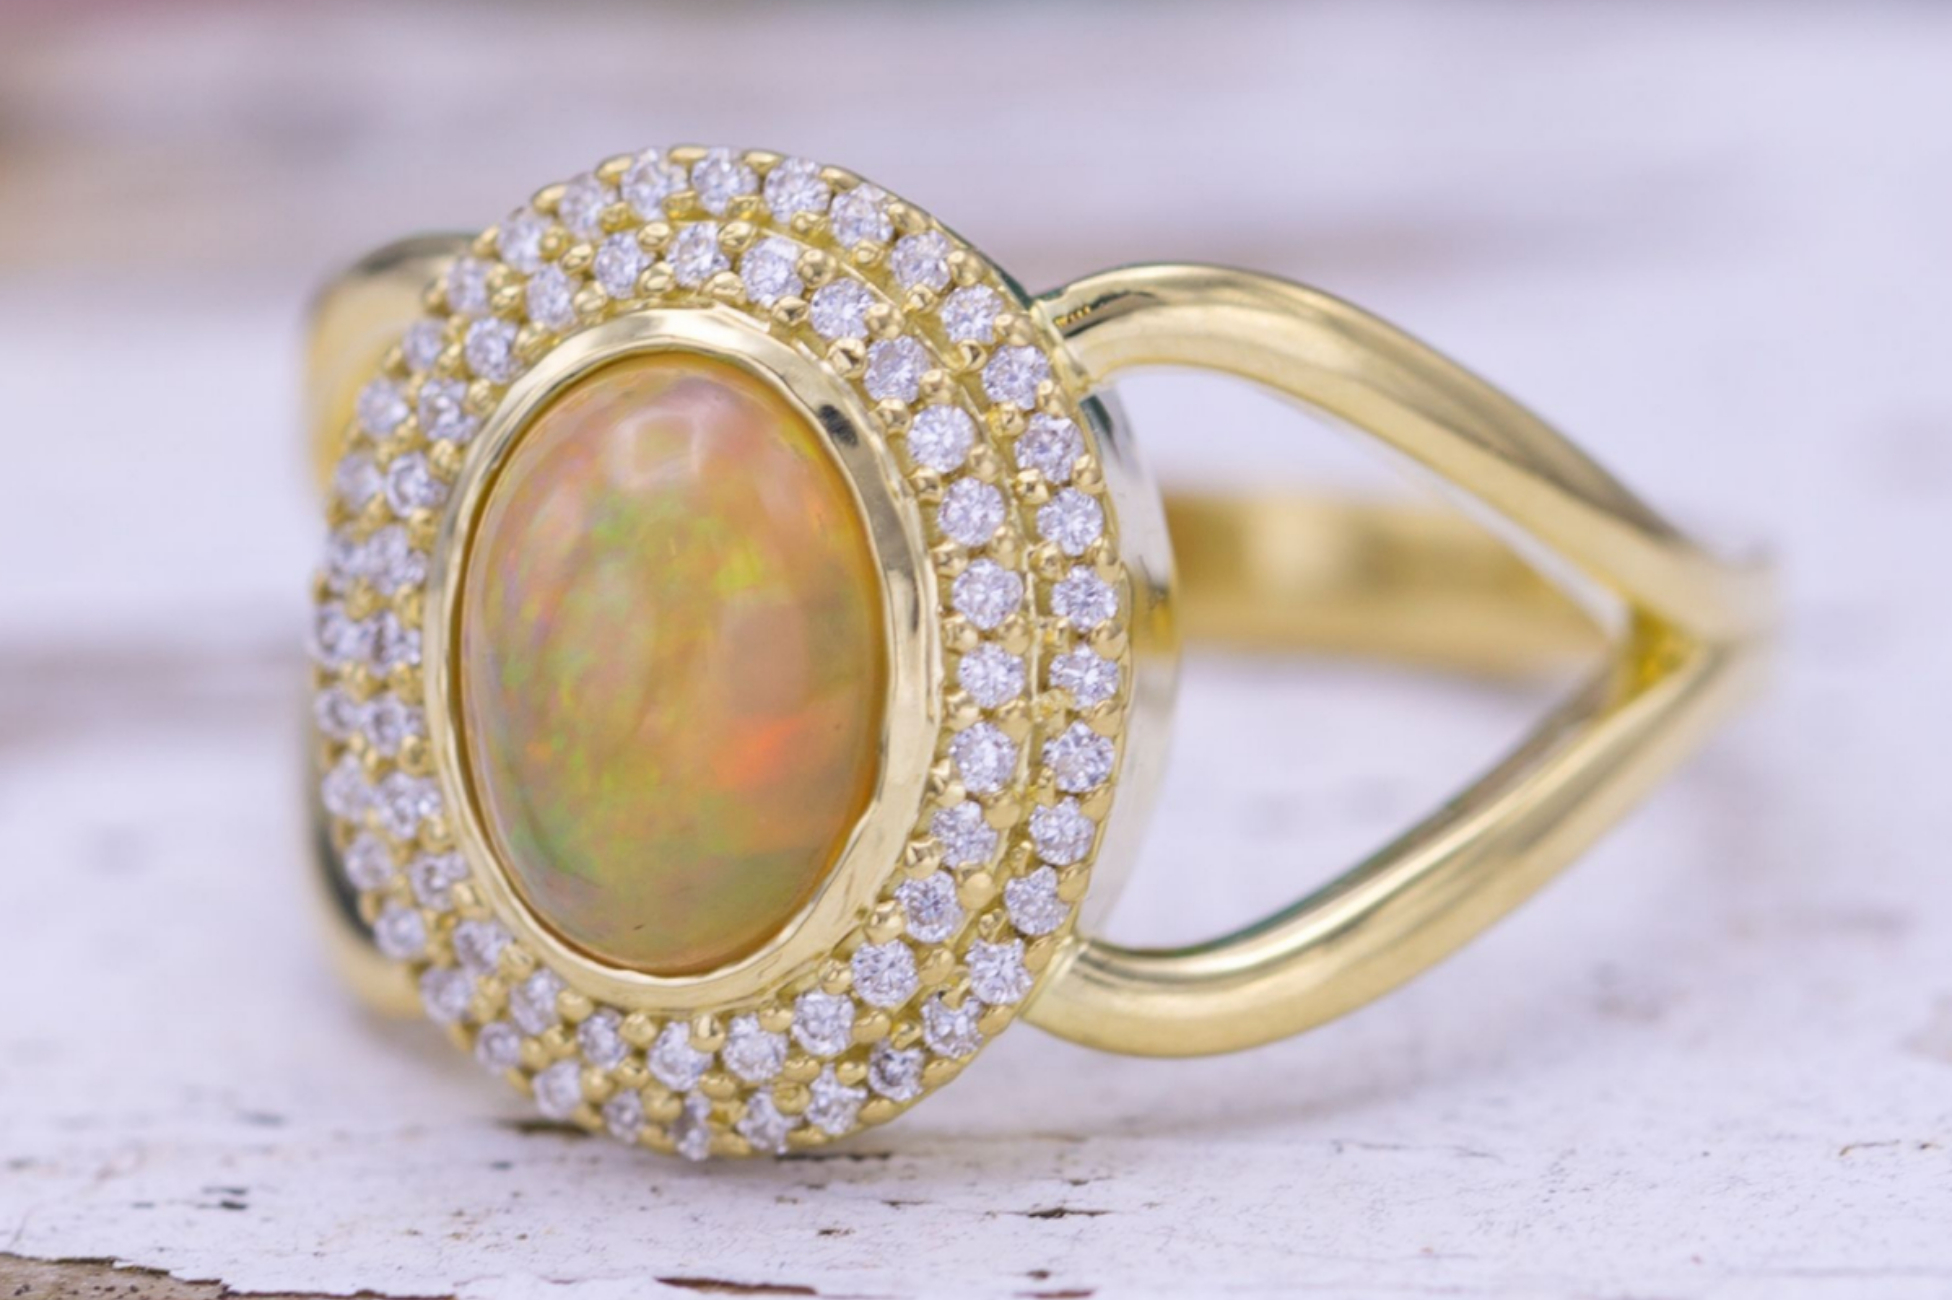 Double halo engagement ring with yellow opal and diamonds